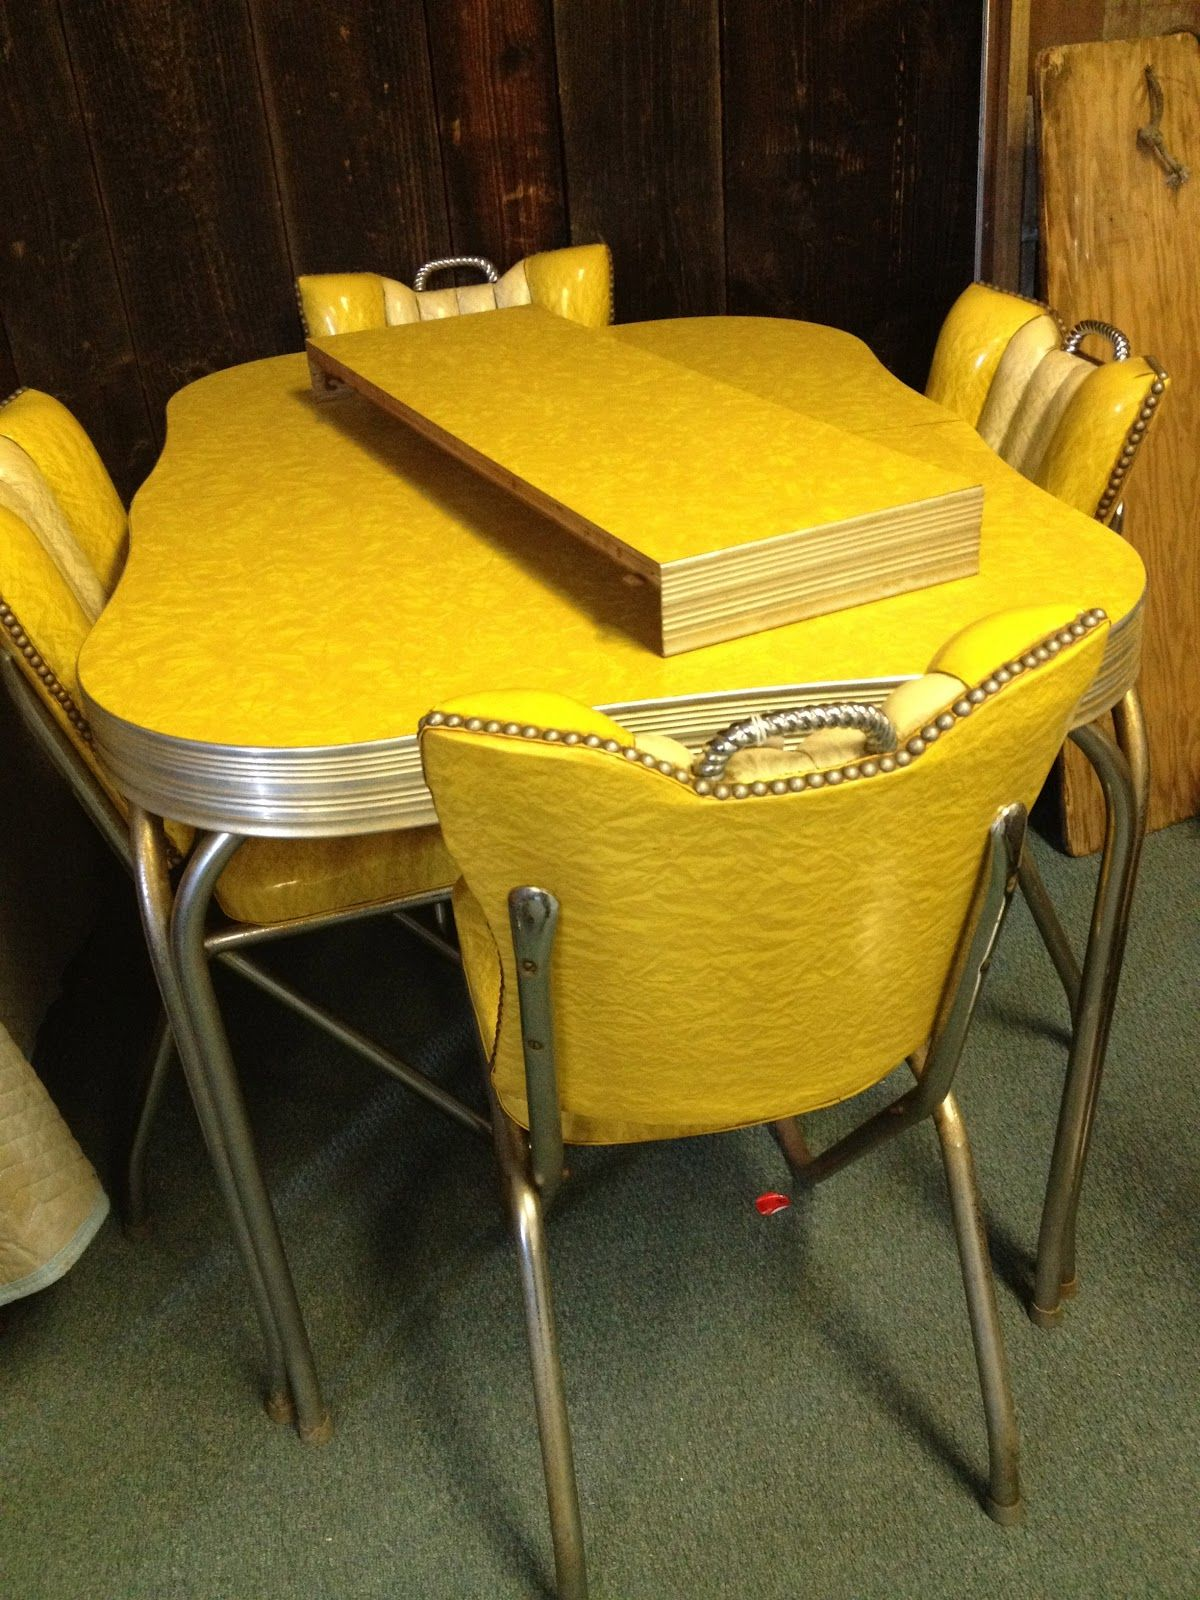 C dianne zweig kitsch n stuff cleaning up chrome legs on formica and chrome vintage kitchen tables and chairs